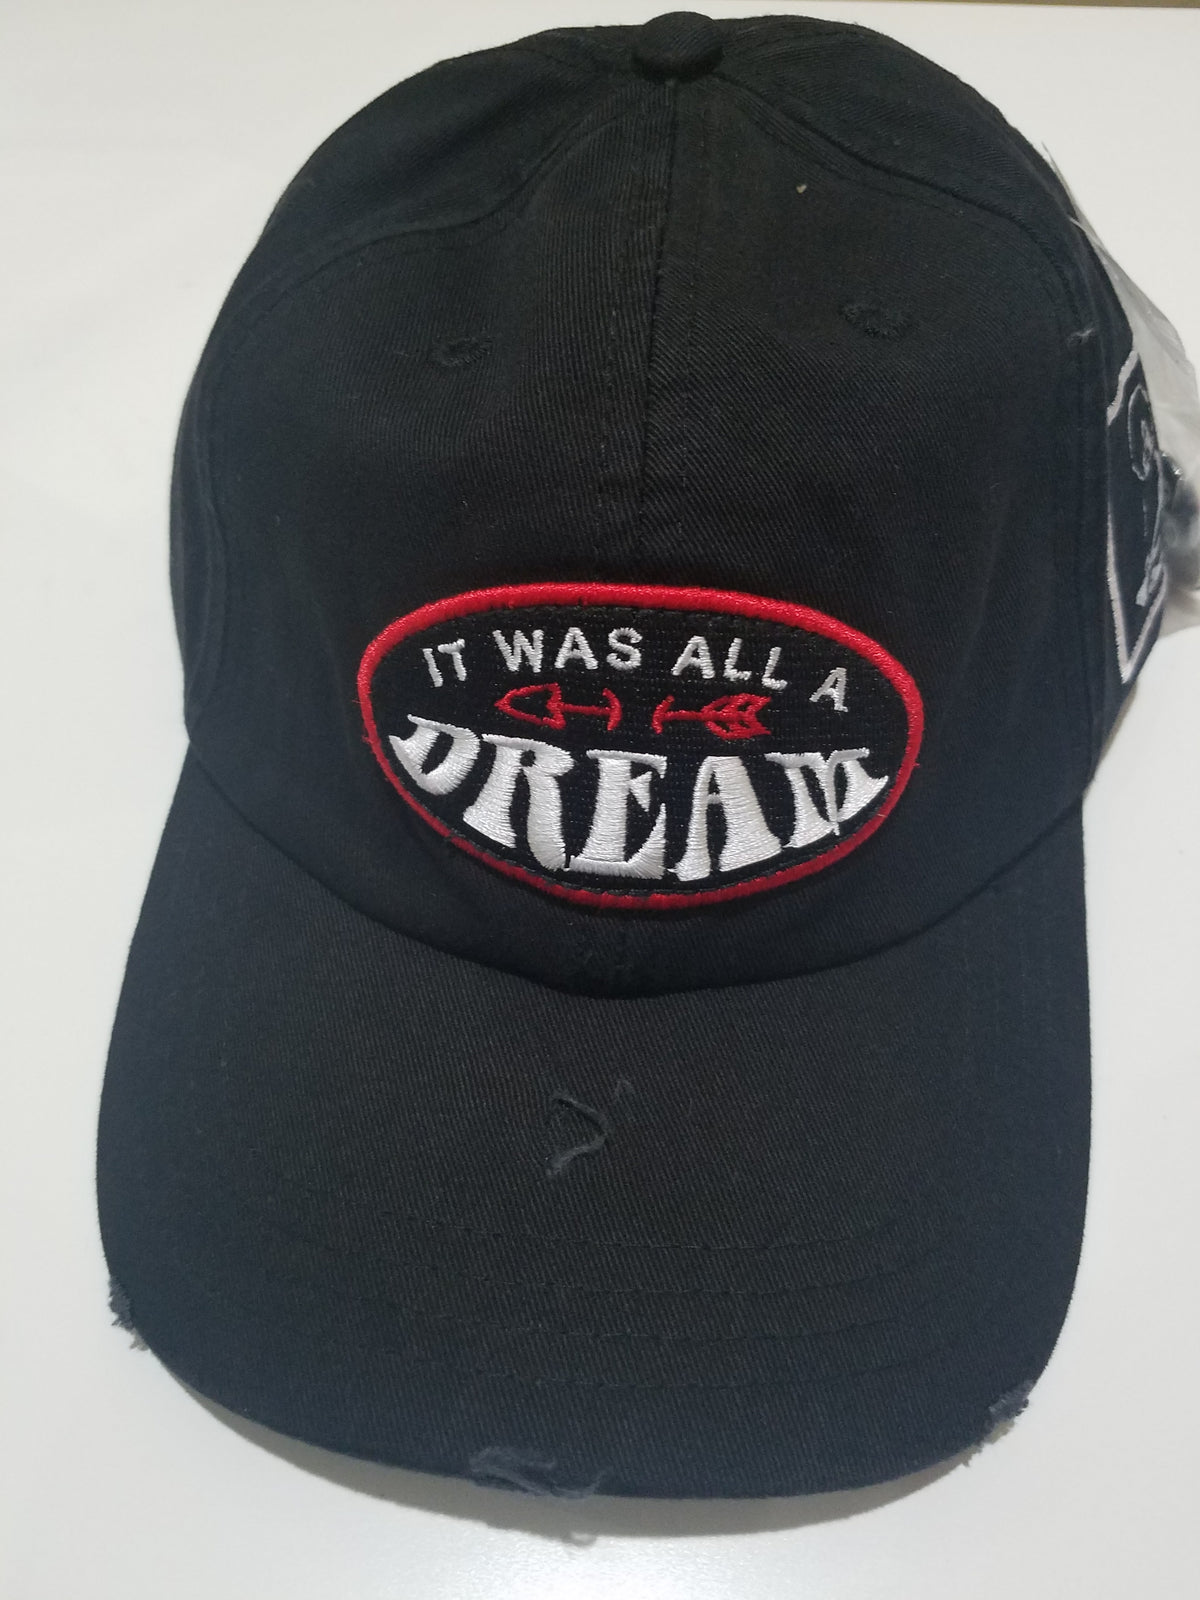 Dream Dad Hat Black (DHDREAMBLK) - cosign1975